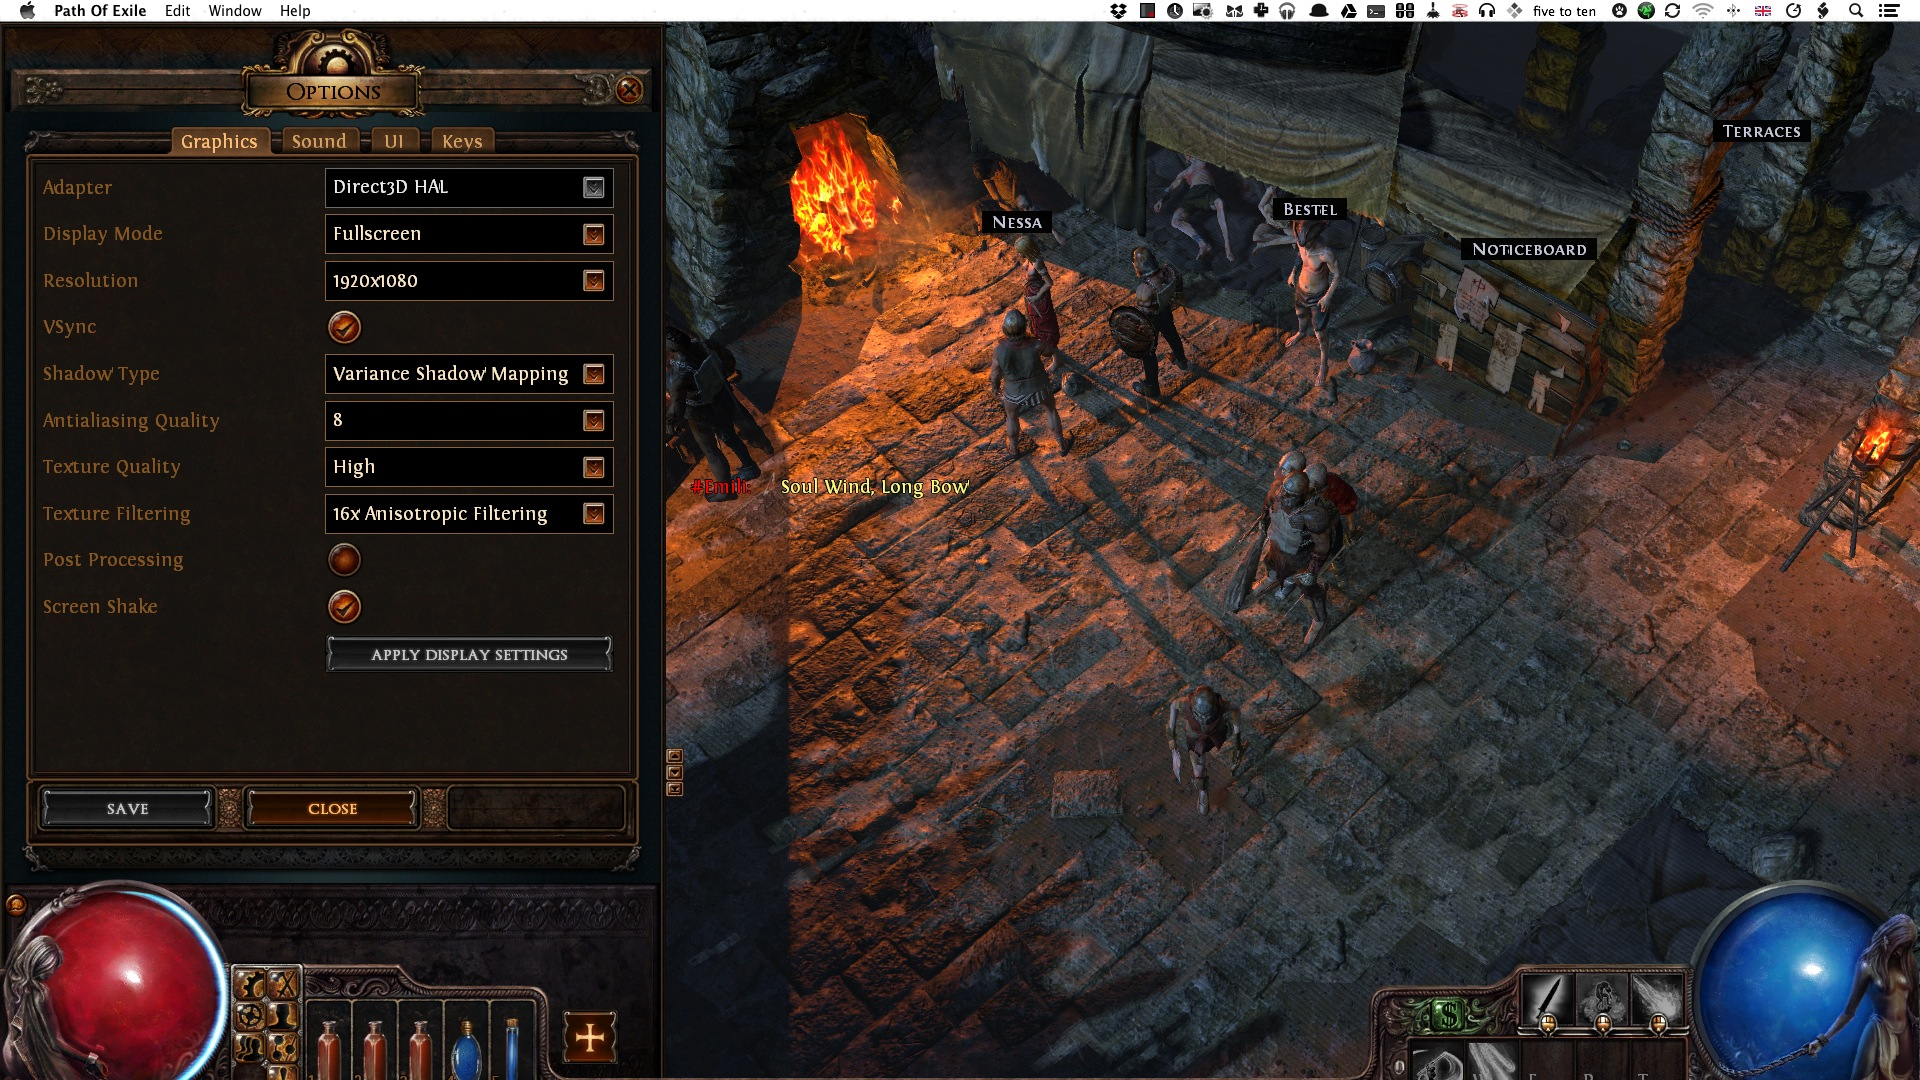 """Path of Exile's """"Unofficial"""" Mac Port"""